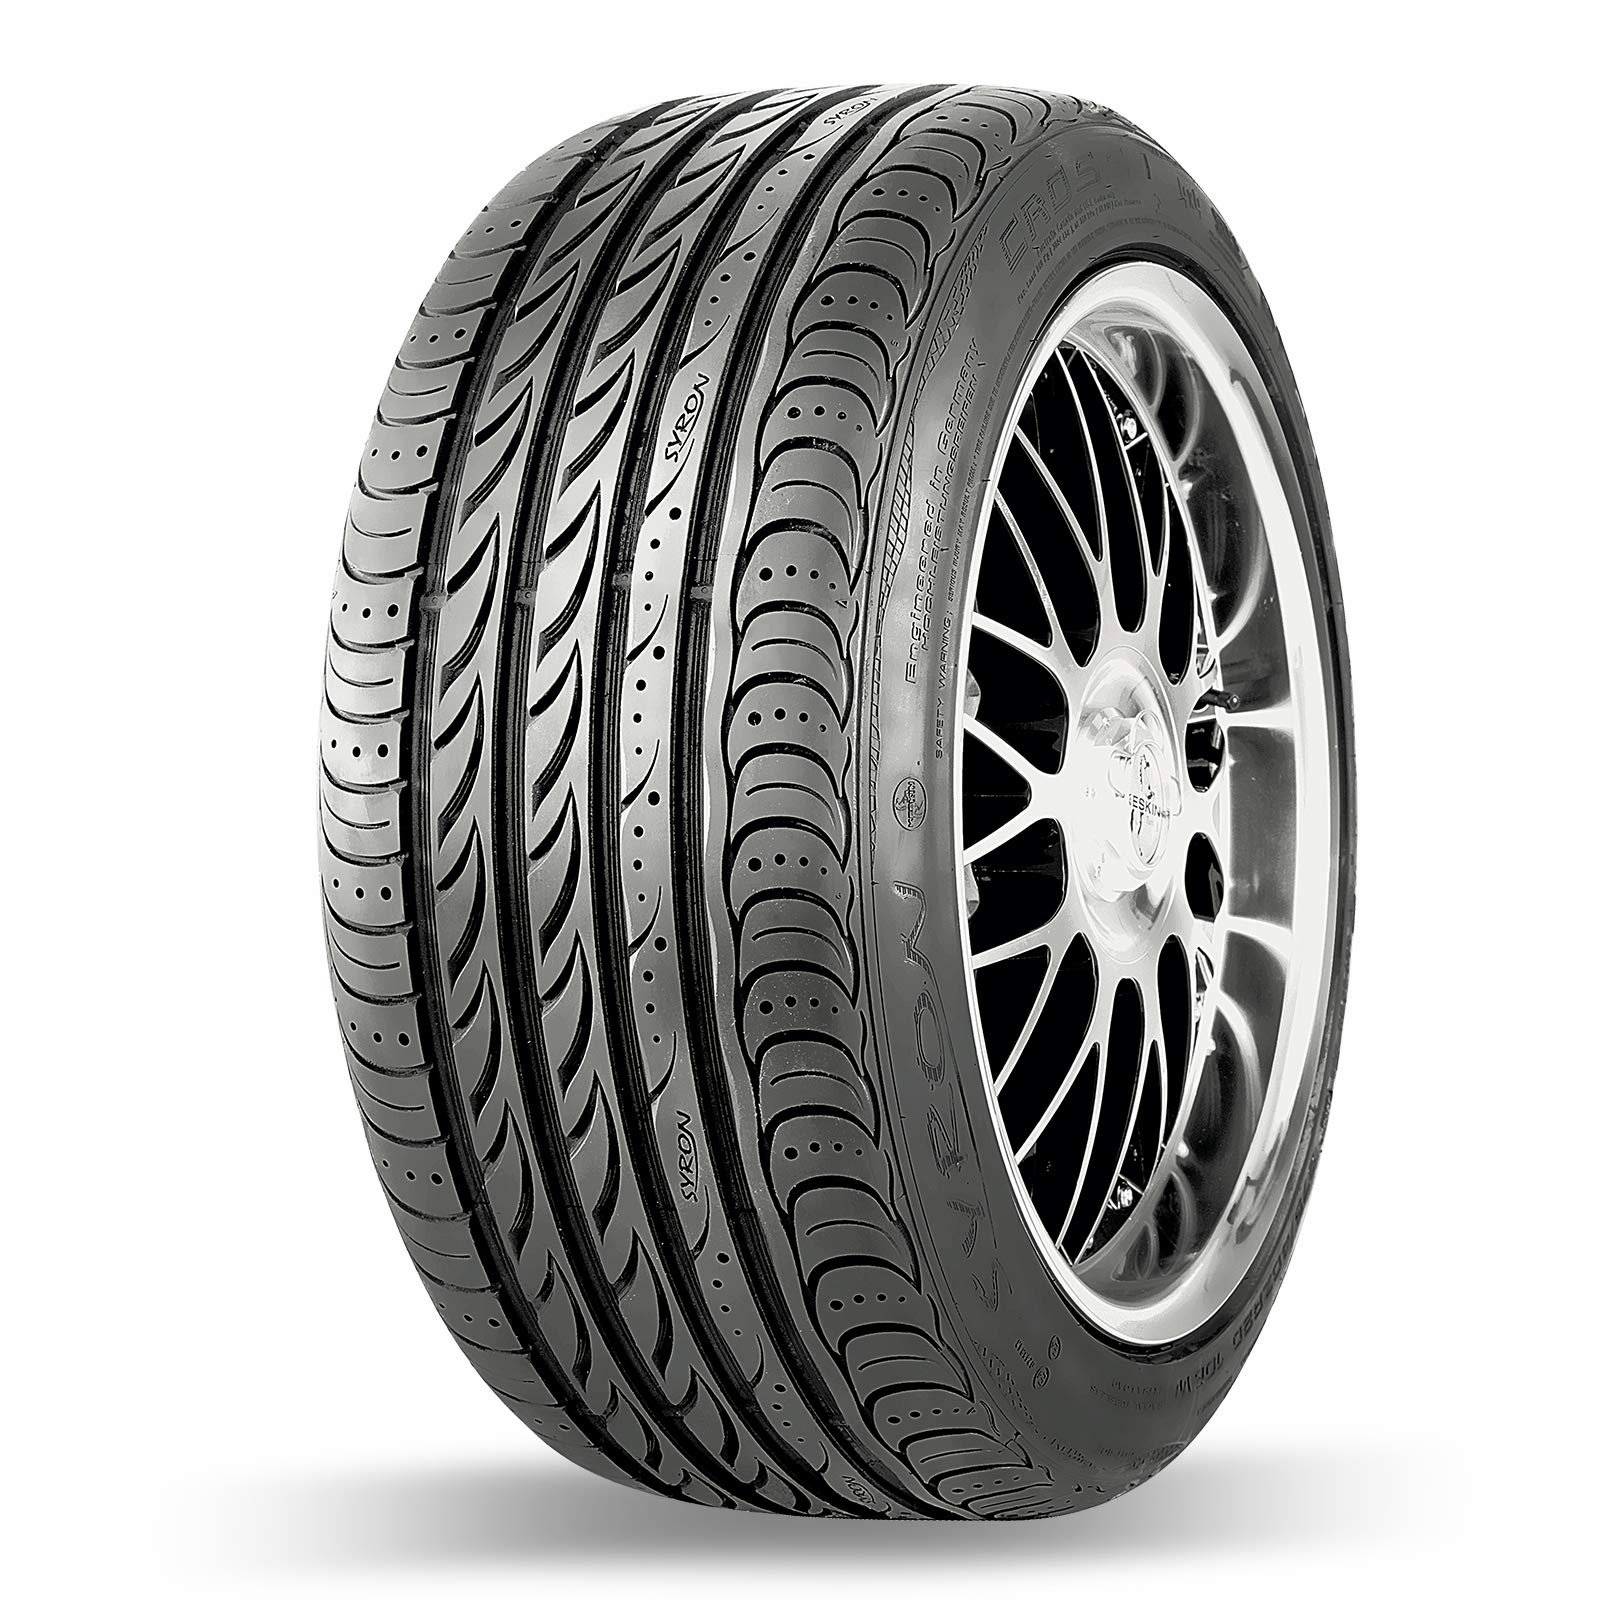 SYRON Tires CROSS 1 plus XL 275/40/20 106 W - E/C/74Db Sommer (SUV) von SYRON Tires